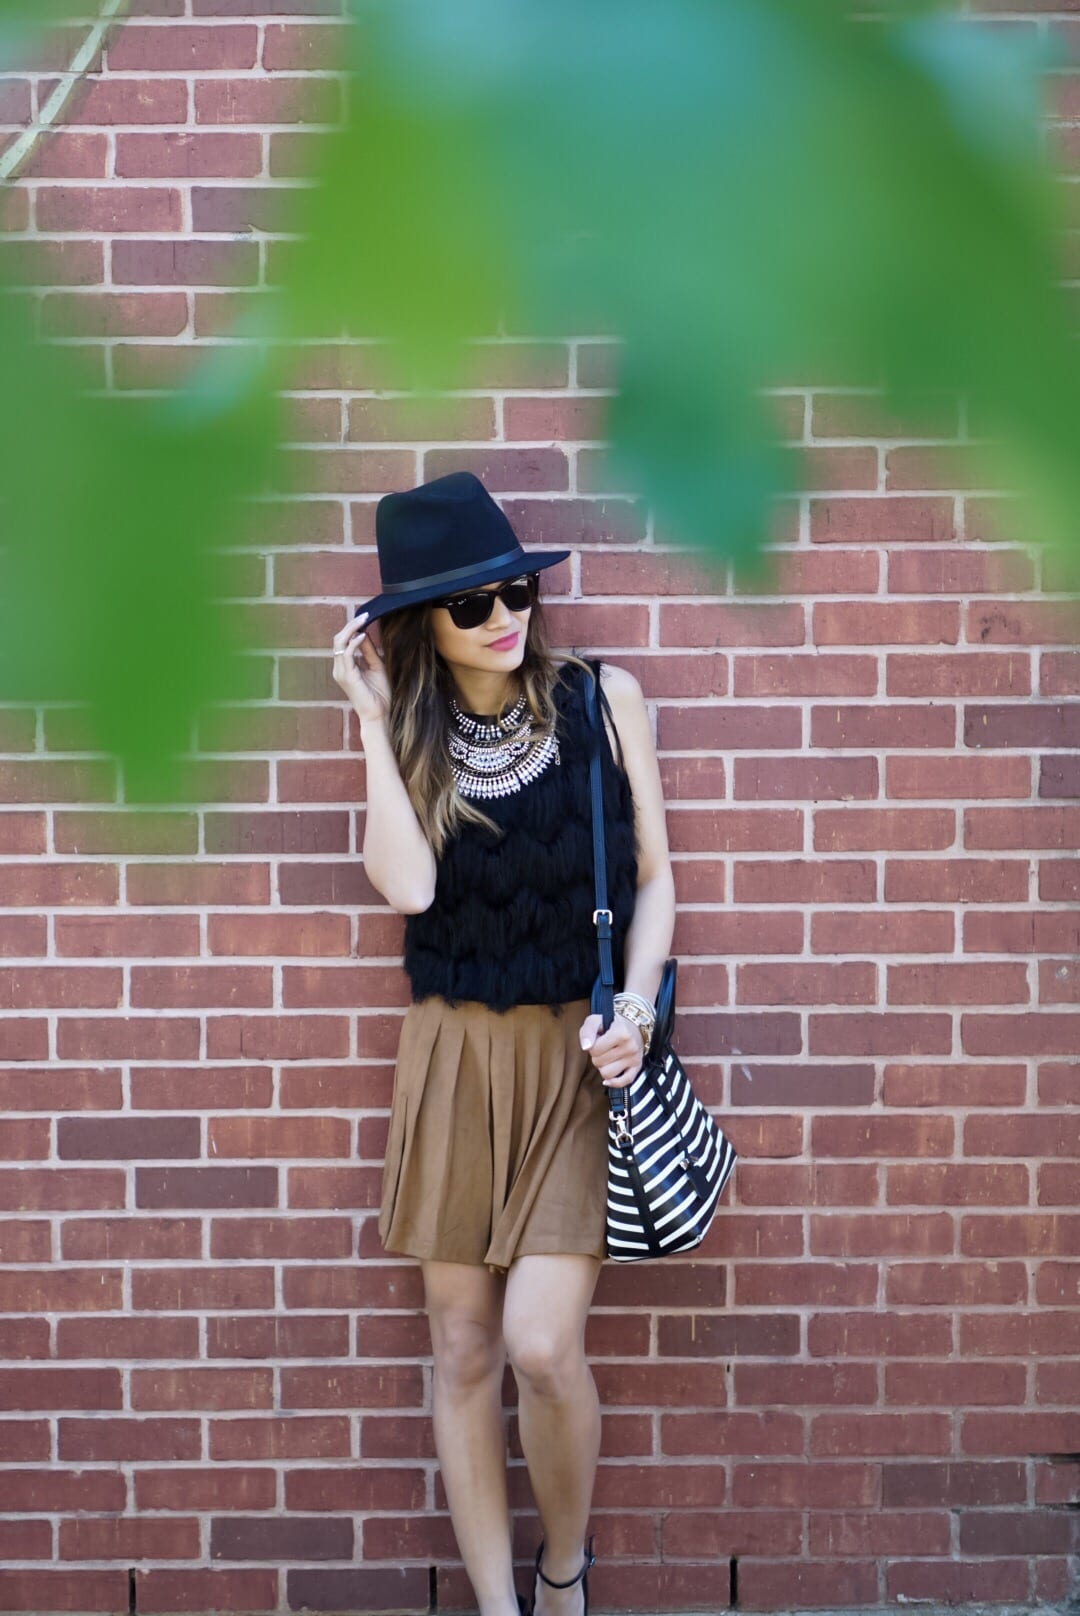 City Chic - Suede Skirt and Fringe Top